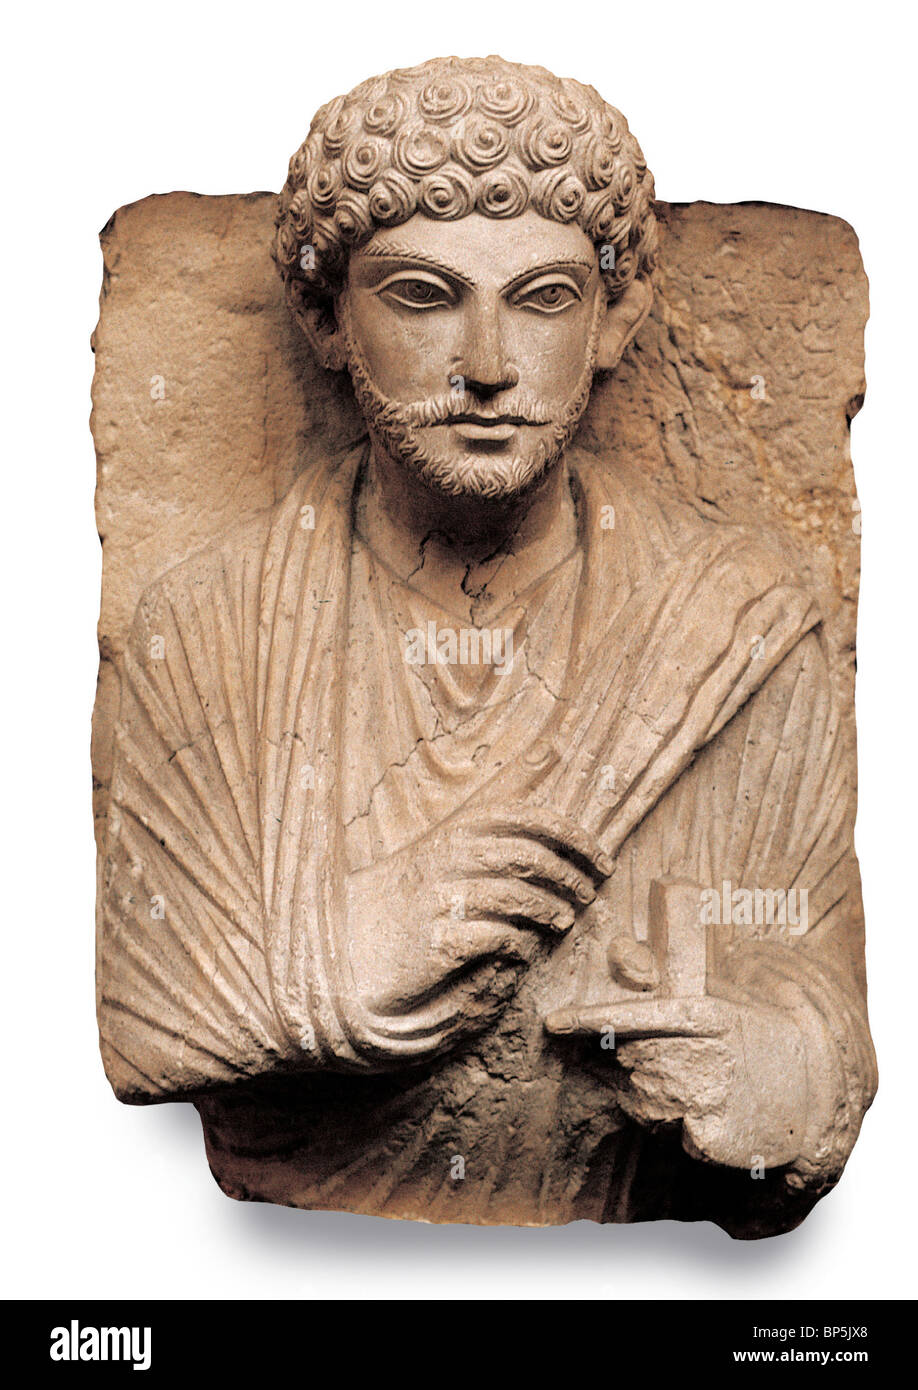 4334. ROMAN PERIOD FUNERARY BUSTS FROM TOMBS IN PALMYRA, DEPICTING THE DECEASED IN THEIR BEST COSTUMES. - Stock Image